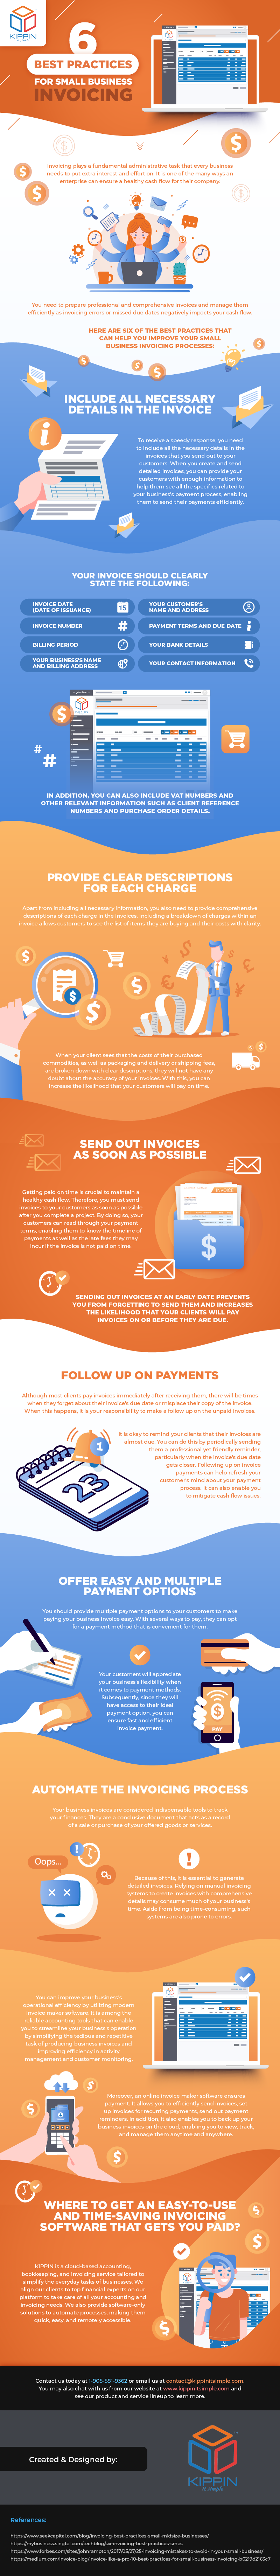 6 Best Practices for Small Business Invoicing